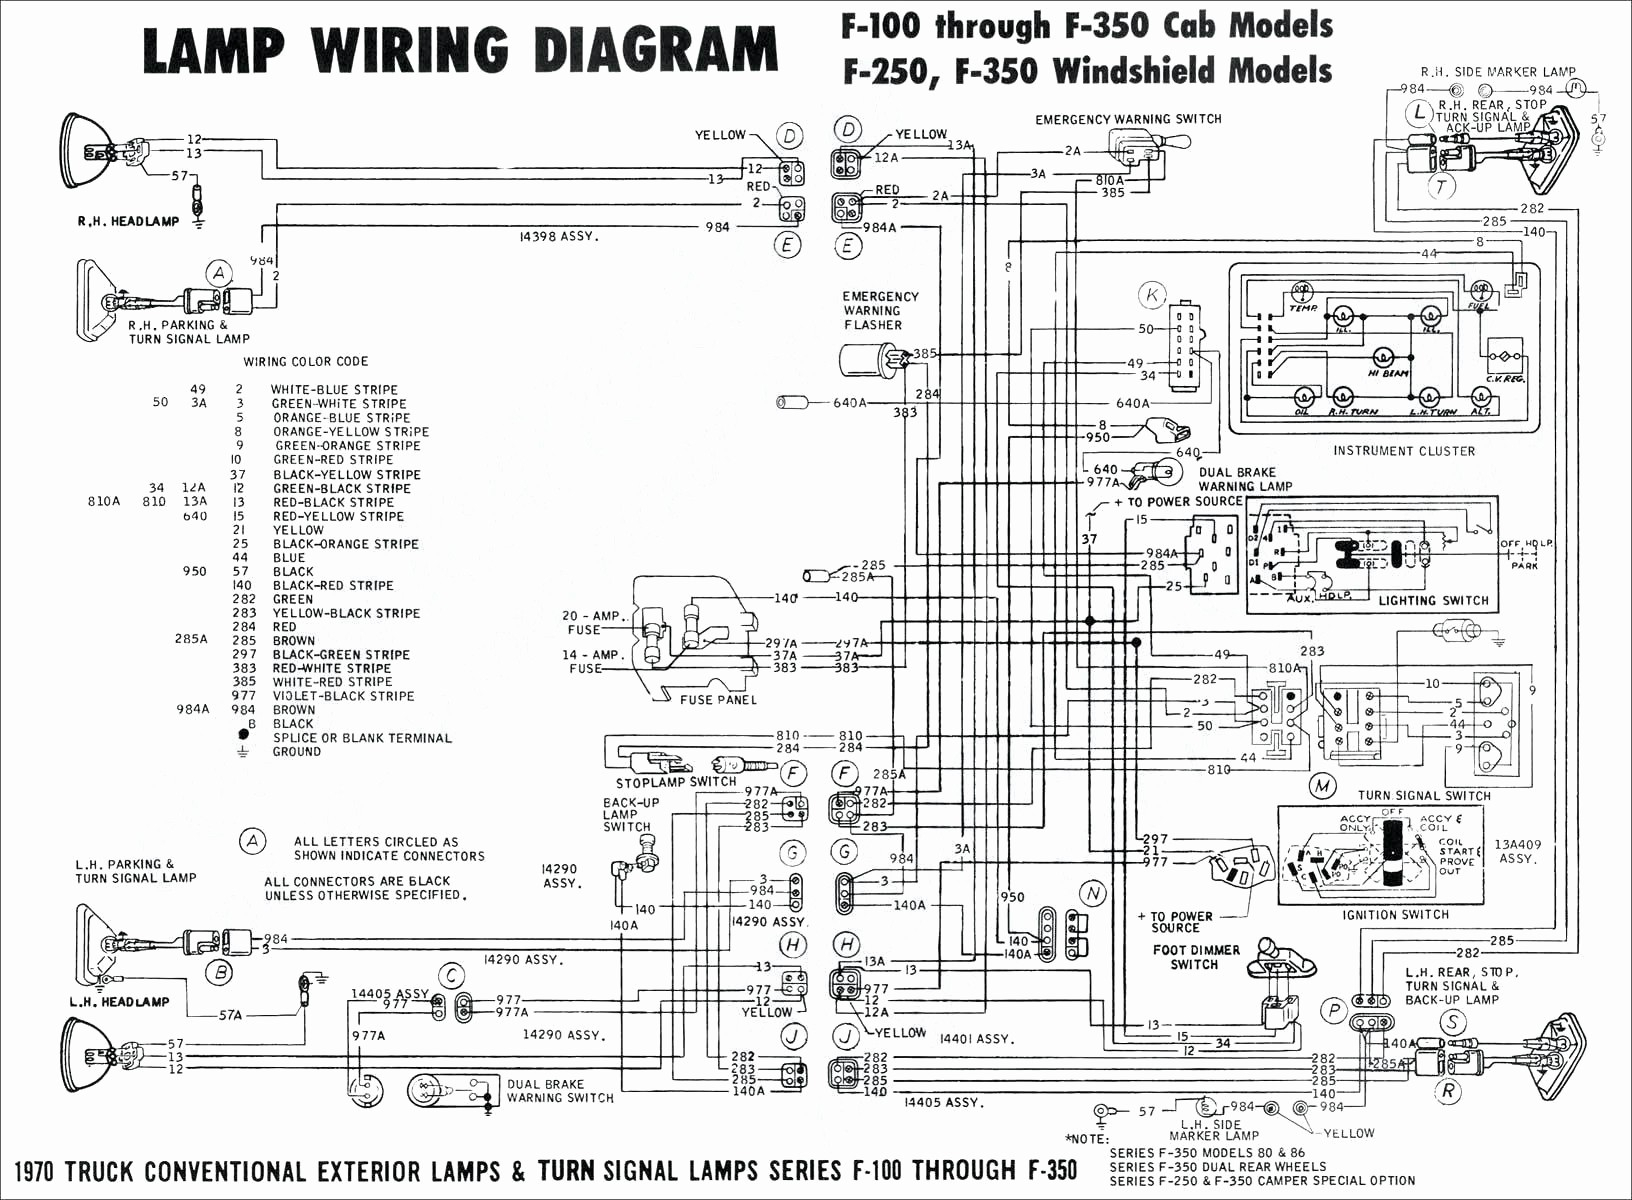 ford f650 wiring diagram Collection-ford f650 wiring diagram ford f 150 headlight wiring diagram wire center u2022 rh daniablub 9-j